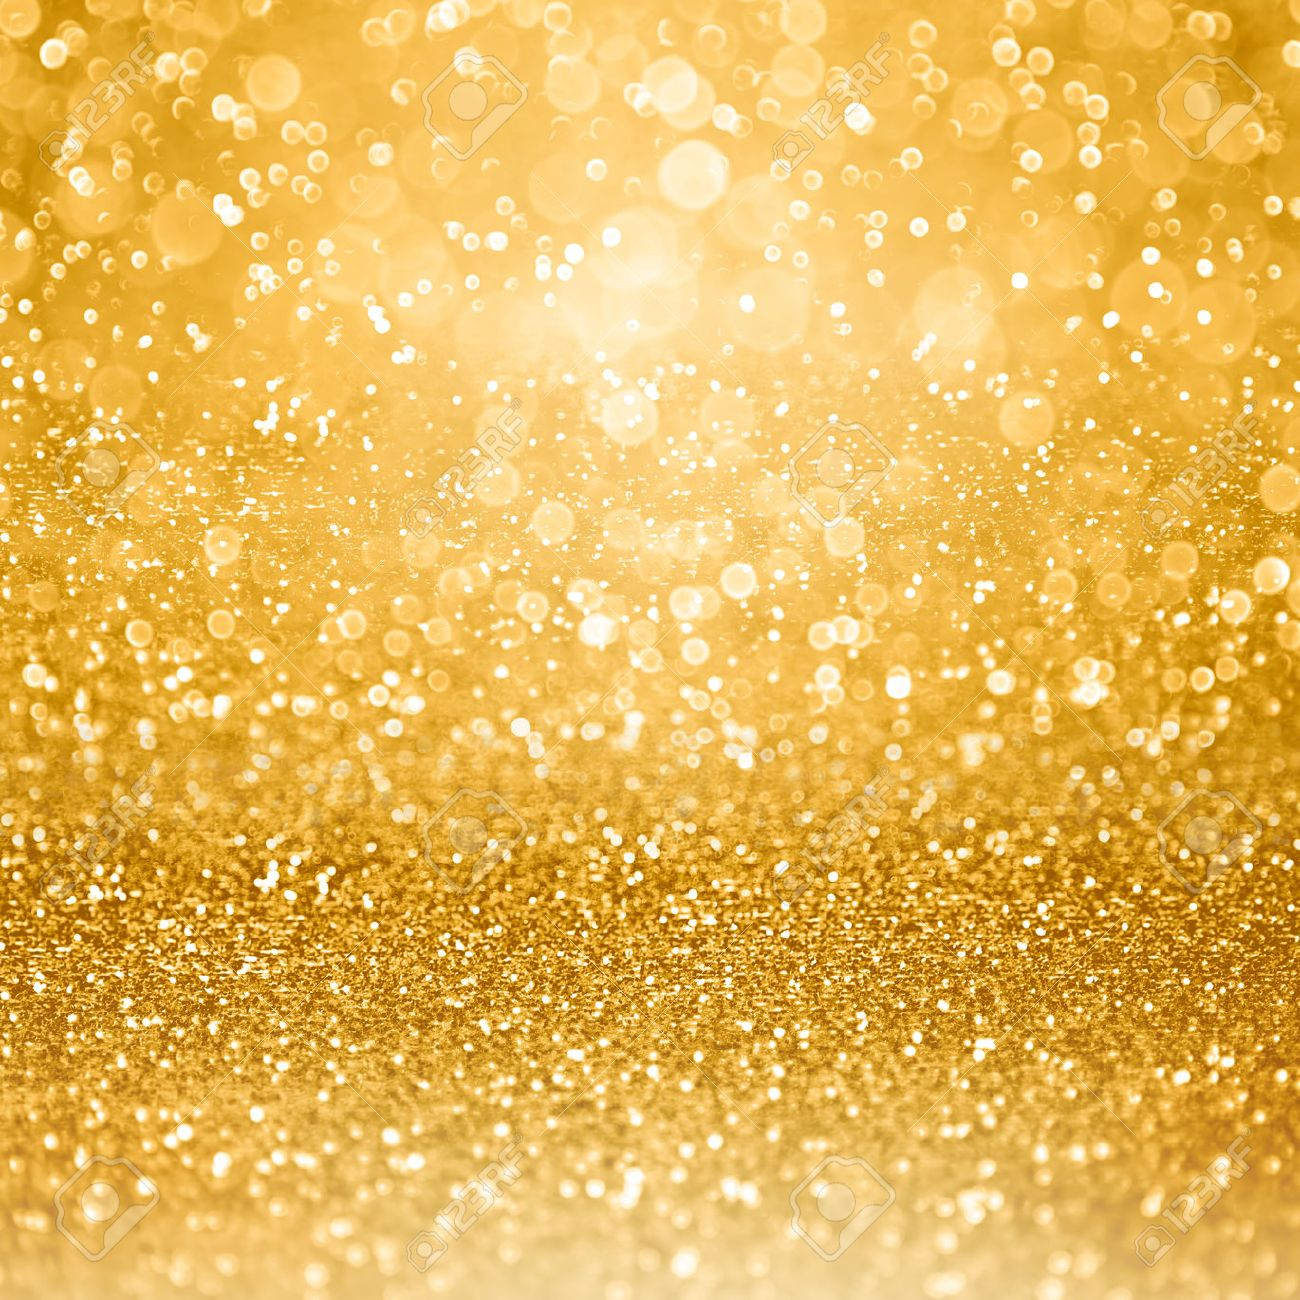 Abstract Glamorous Gold Glitter Sparkle Confetti Background Or ...